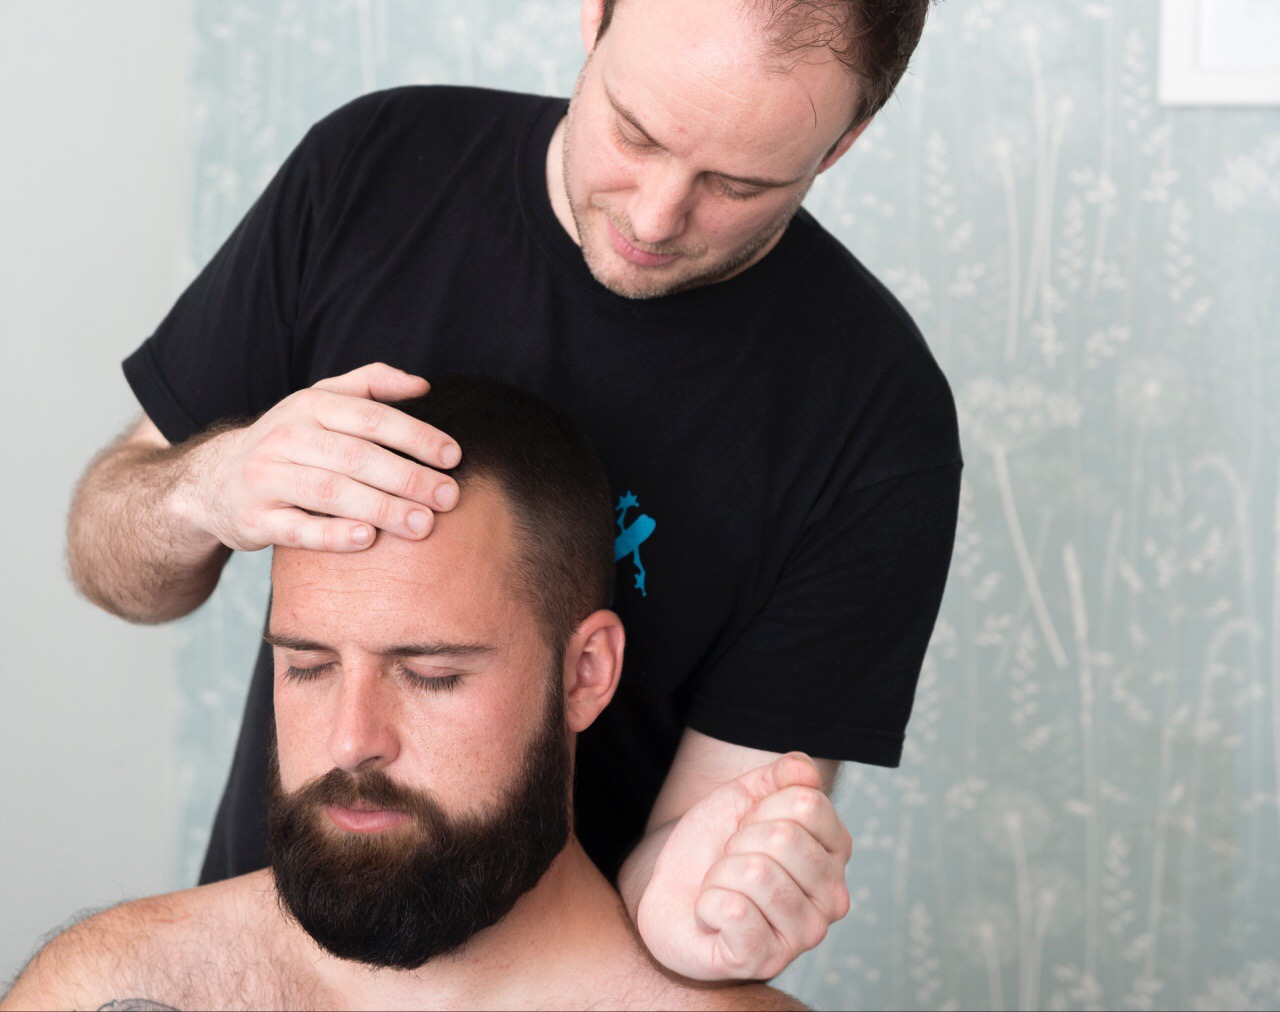 Neck massage for tension relief